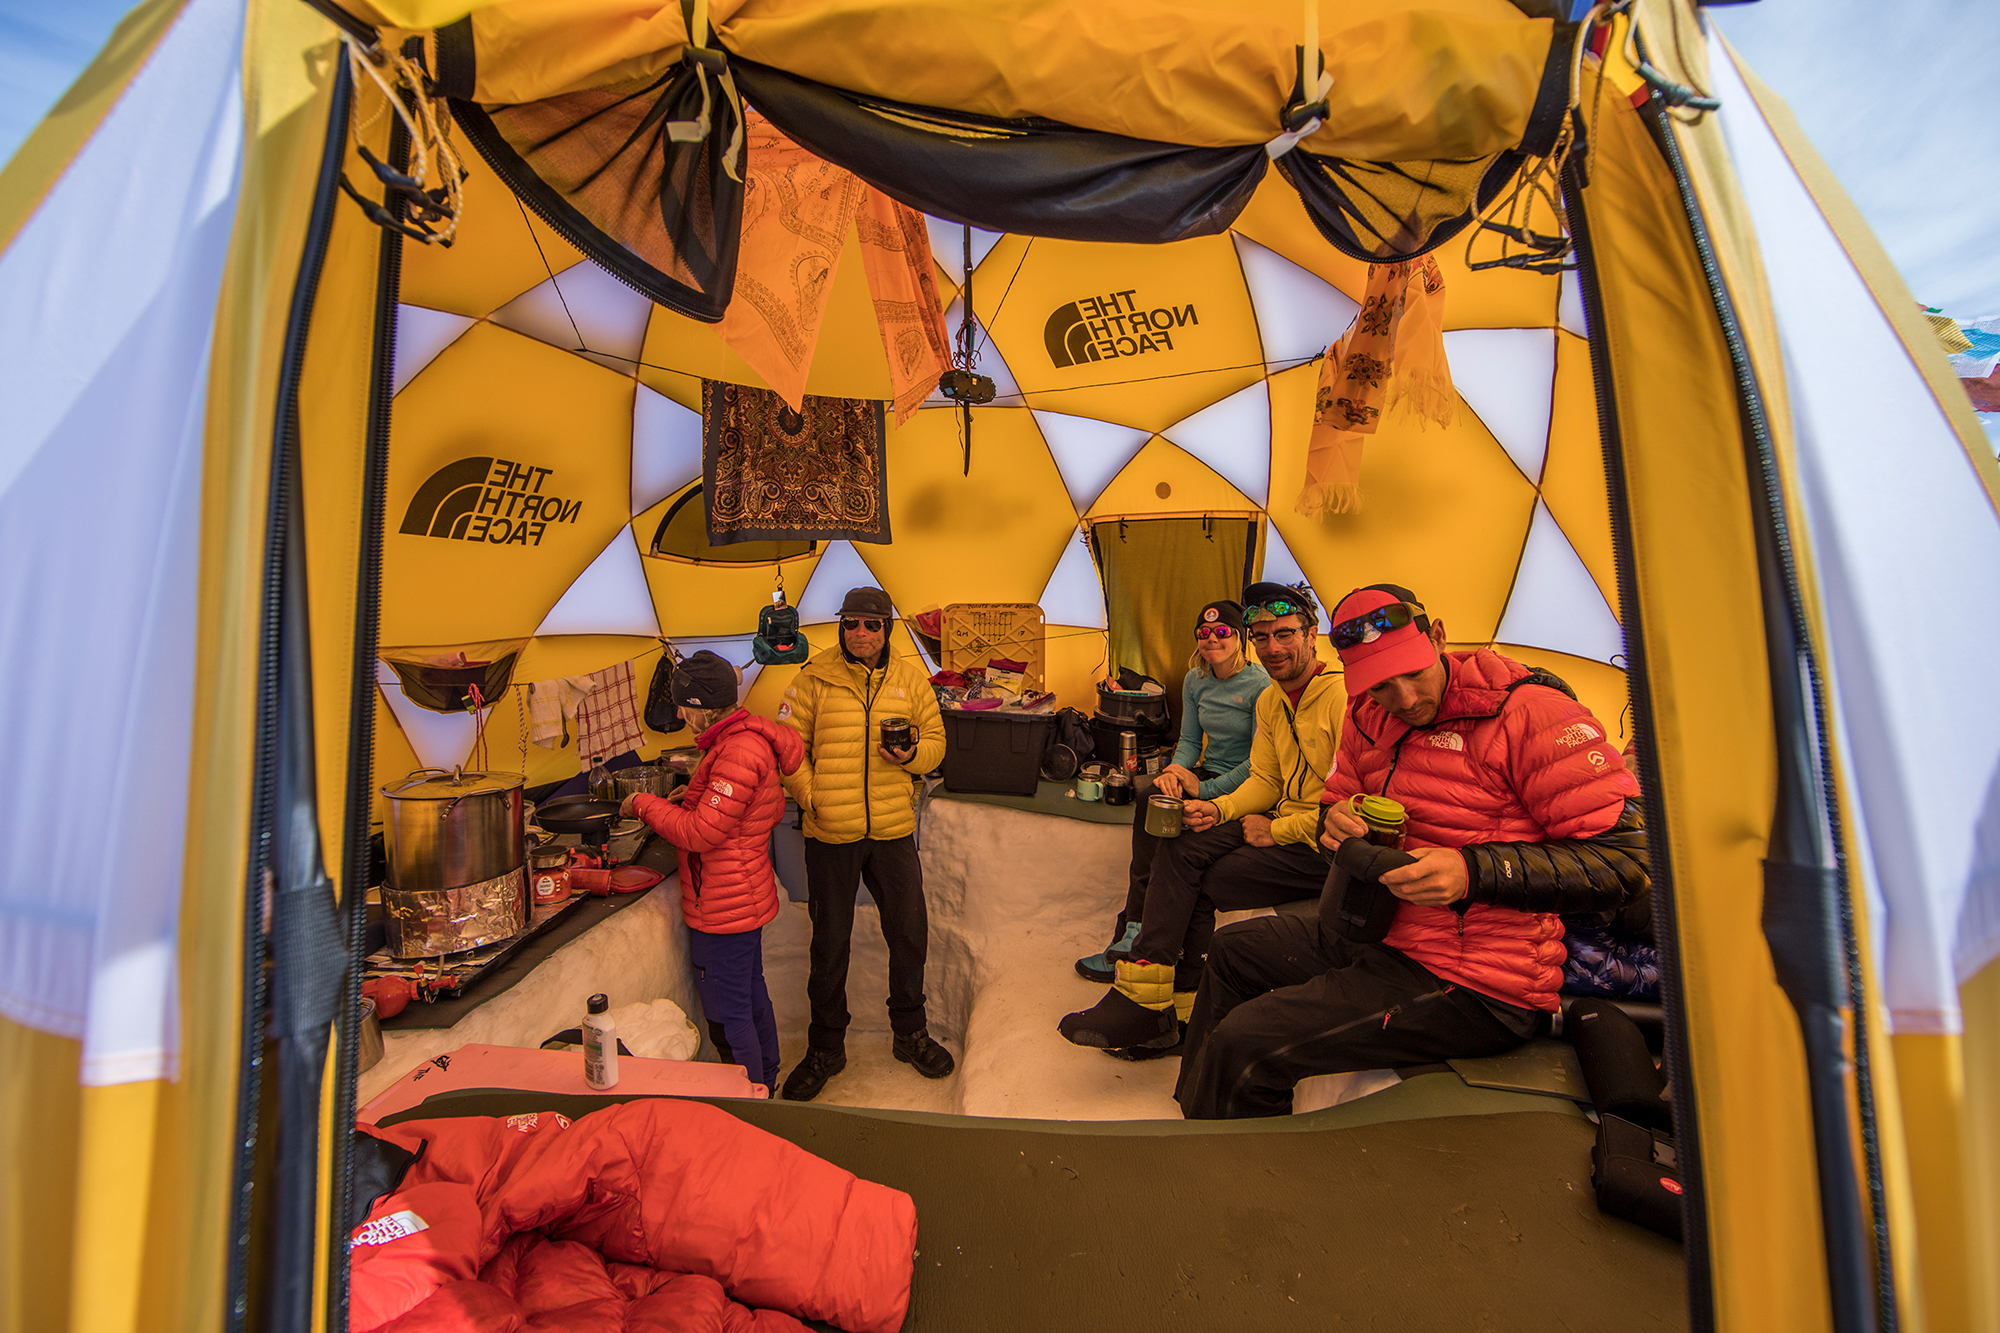 Floorless Dome Tent. expedition antarctica the north face & Dream Team Gear: TNF Kit Designed for Antarctic Climbing | GearJunkie